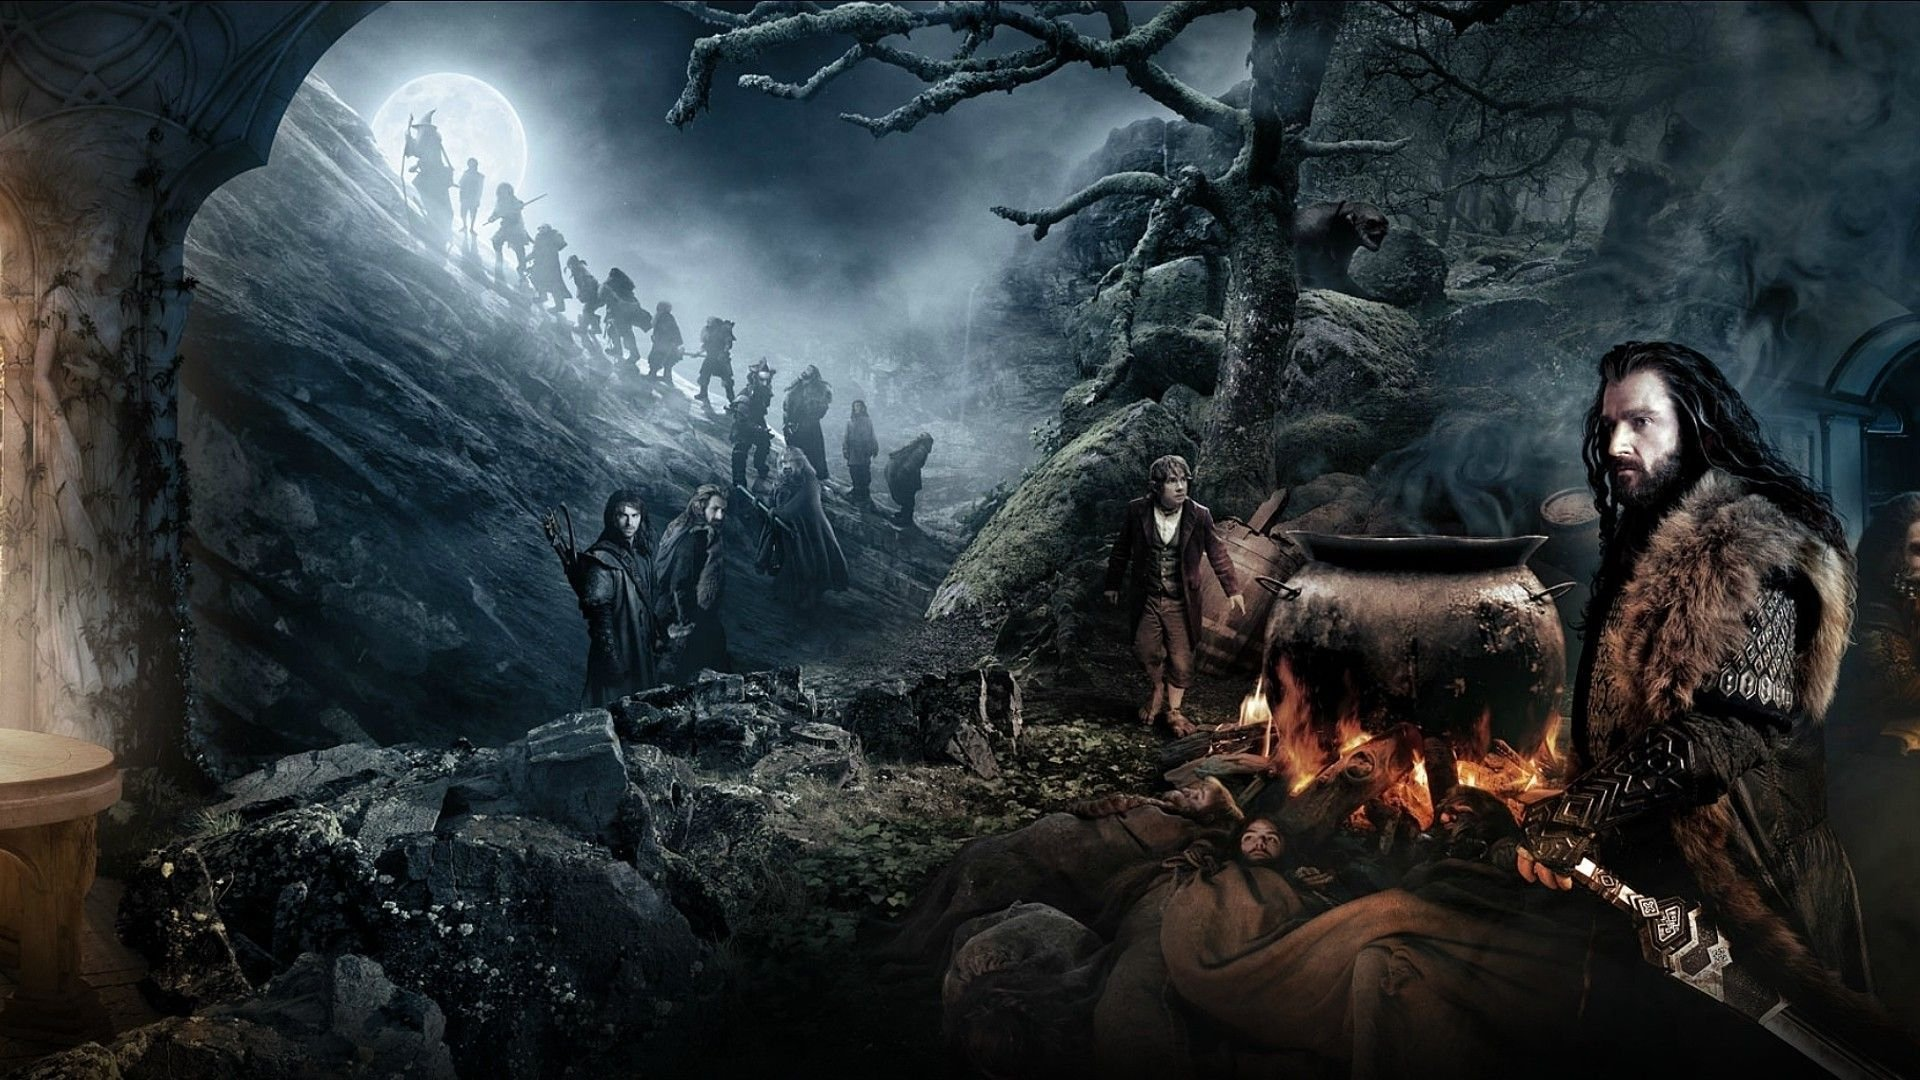 HOBBIT UNEXPECTED JOURNEY lotr adventure fantasy lord rings wallpaper 1920x1080